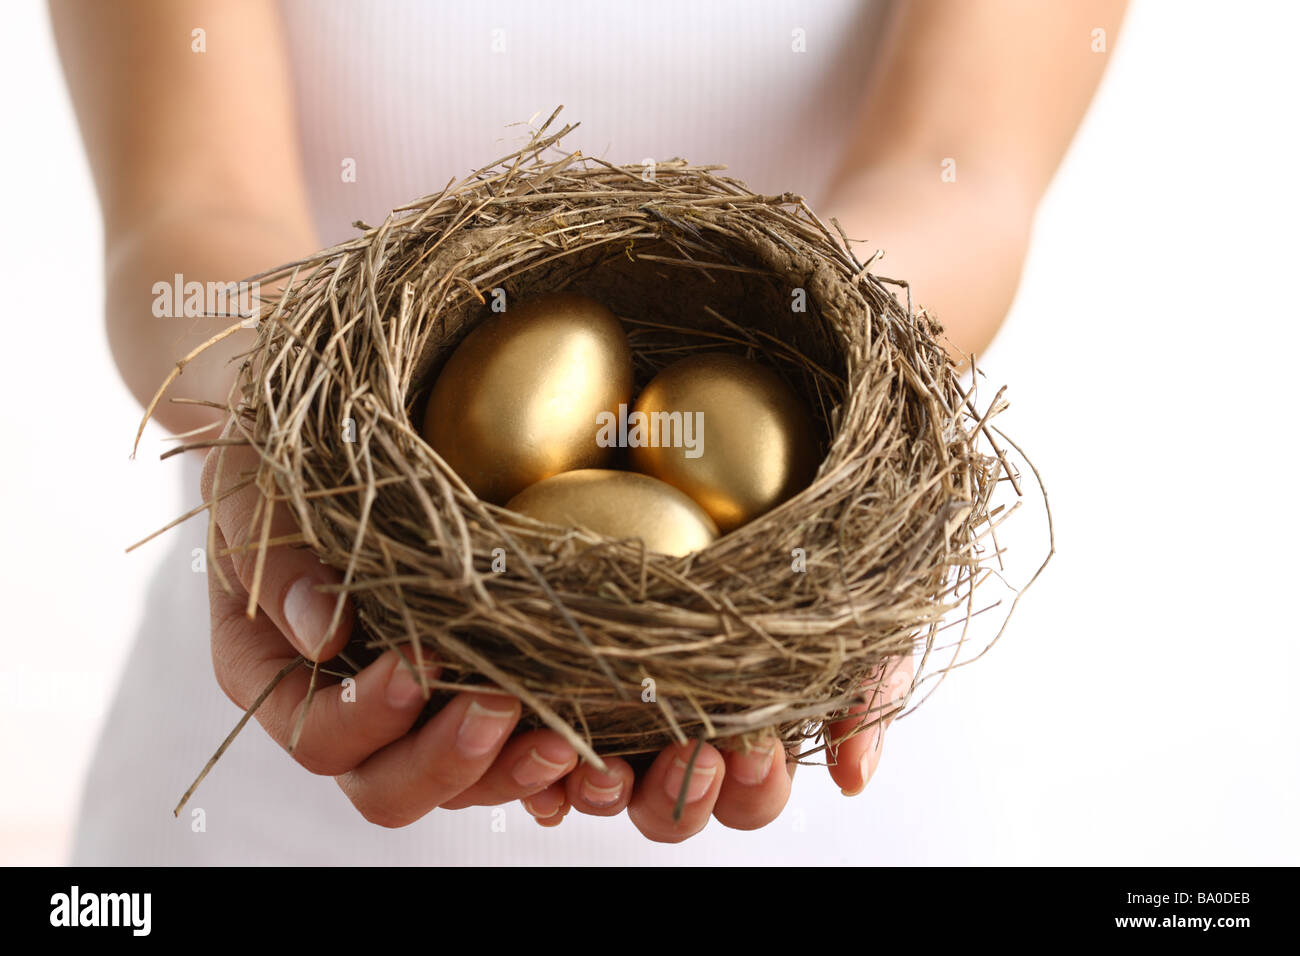 Hands holding nest with golden eggs - Stock Image